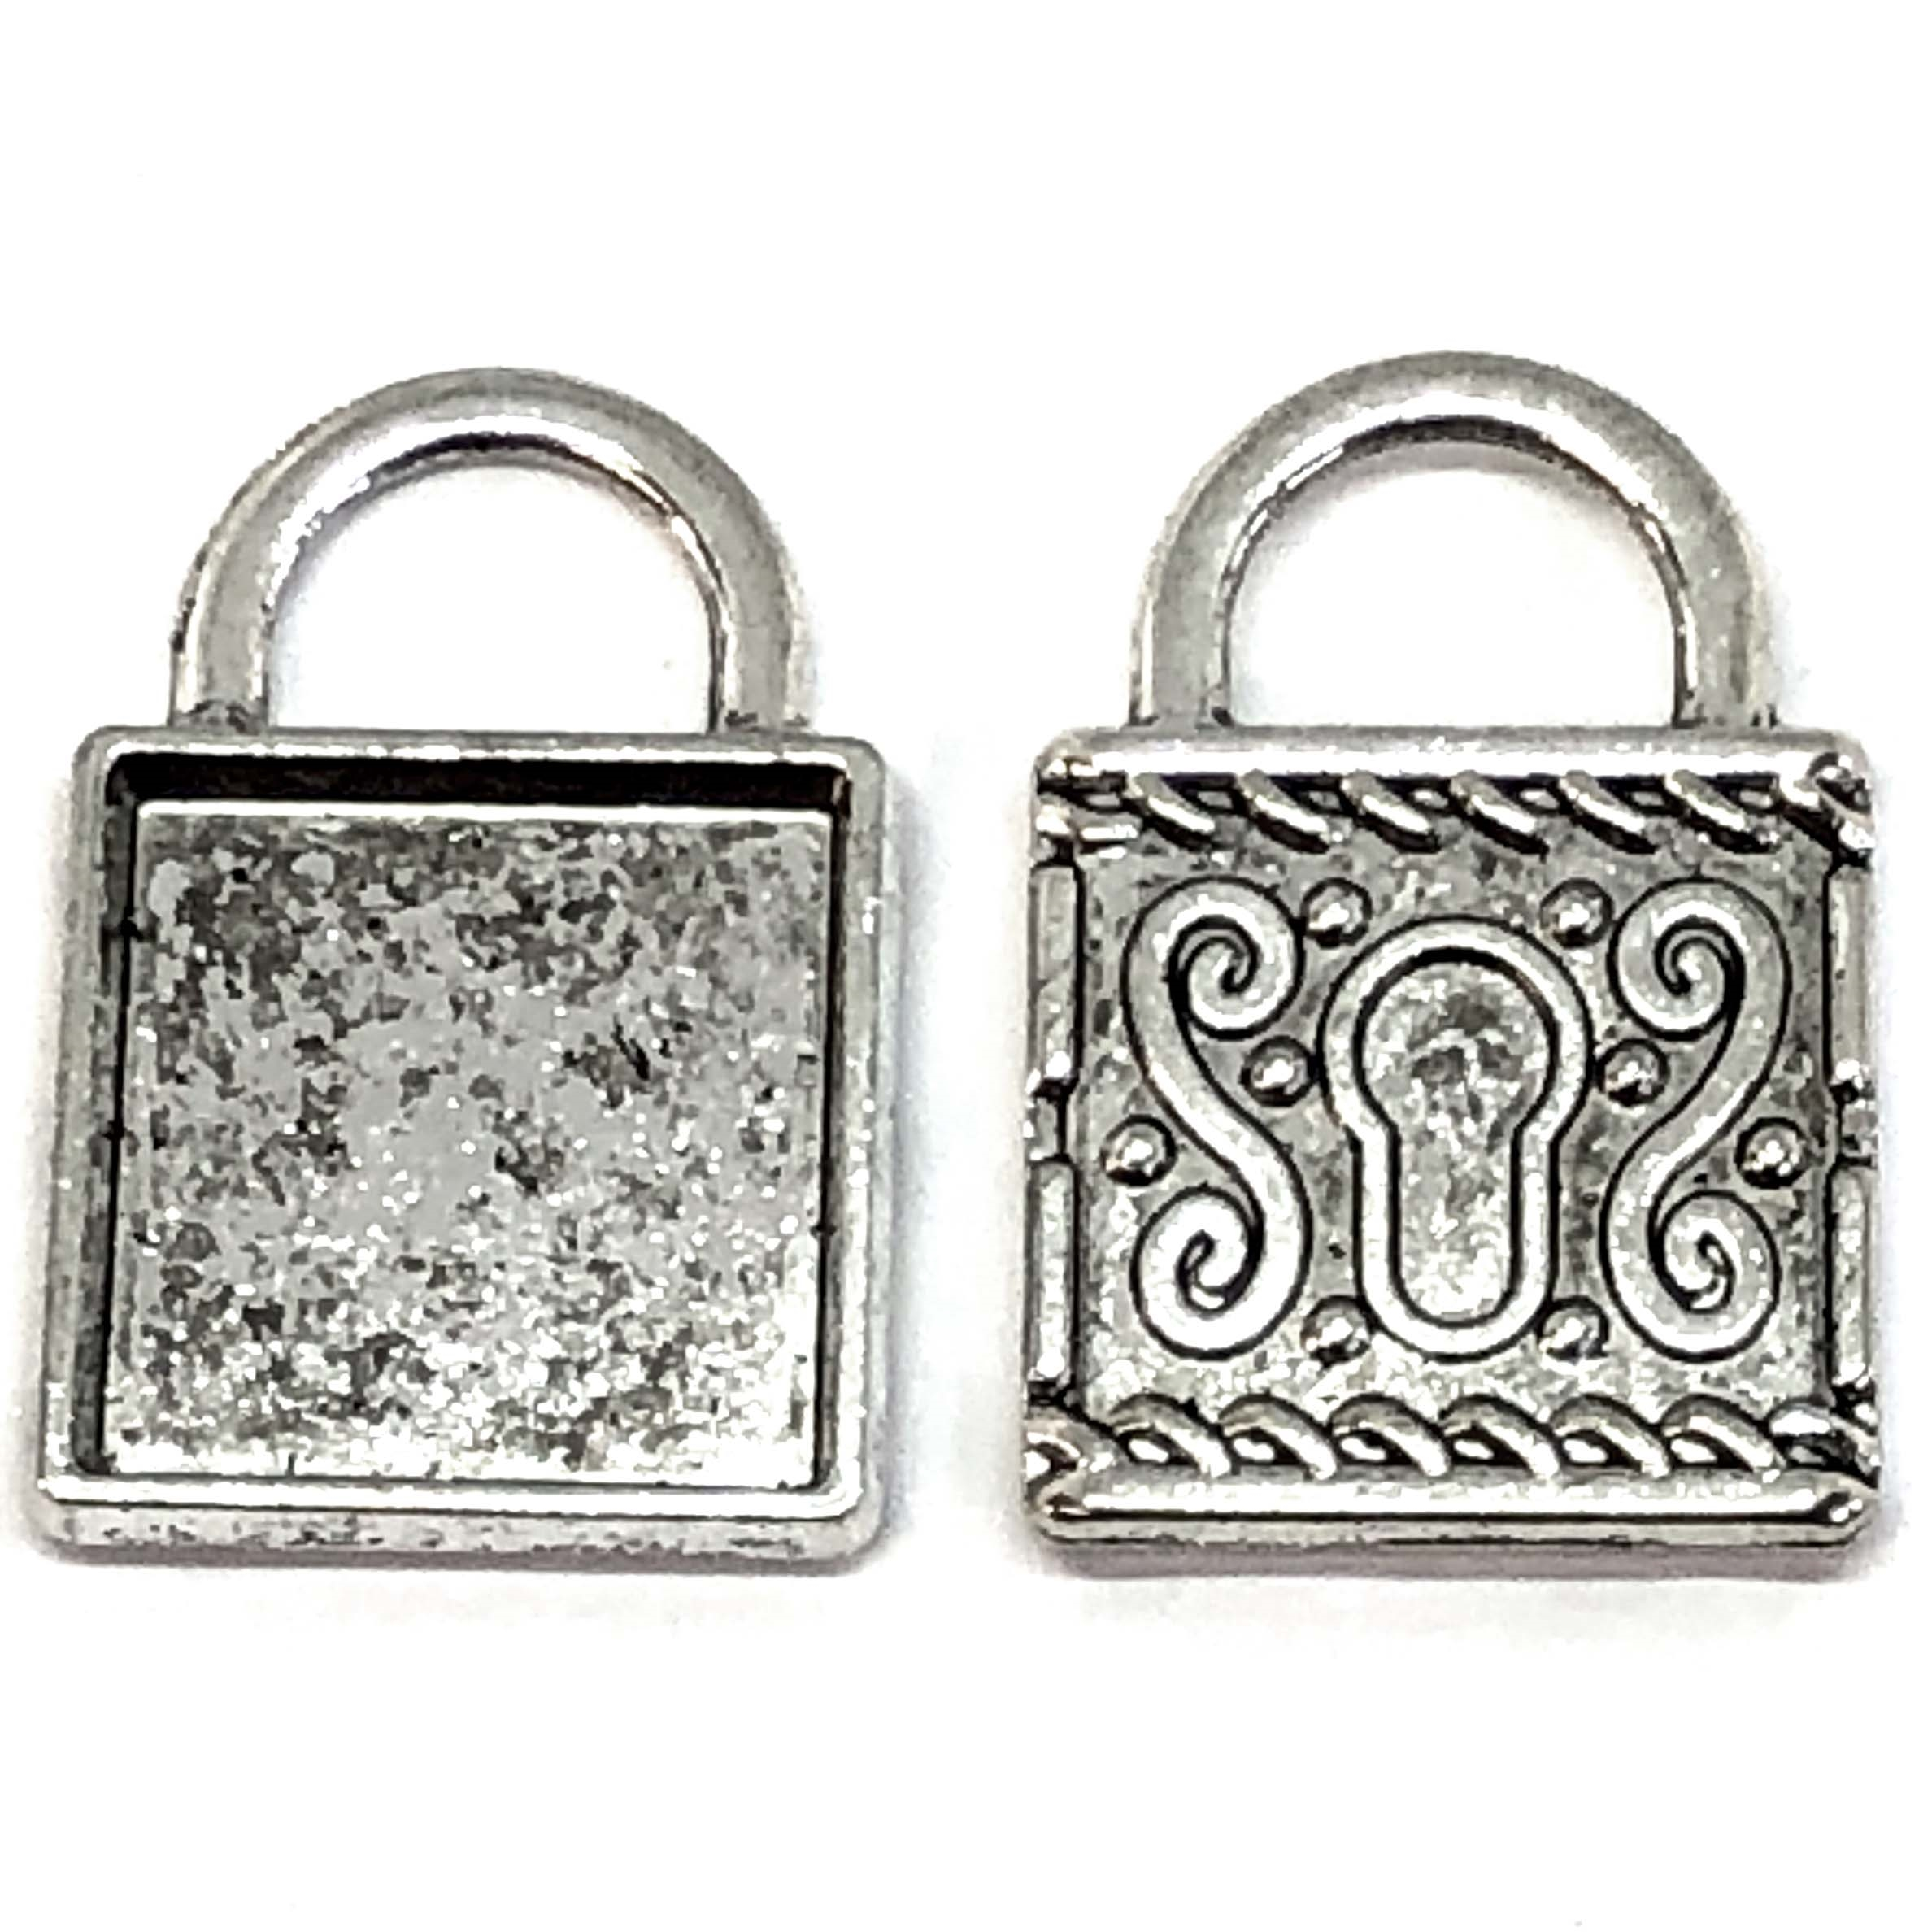 Lock pendant, locket base, antique silver, 09163, antique silver, nickel free, B'sue Boutiques, jewelry making, vintage supplies, jewelry supplies, jewelry findings, 09163